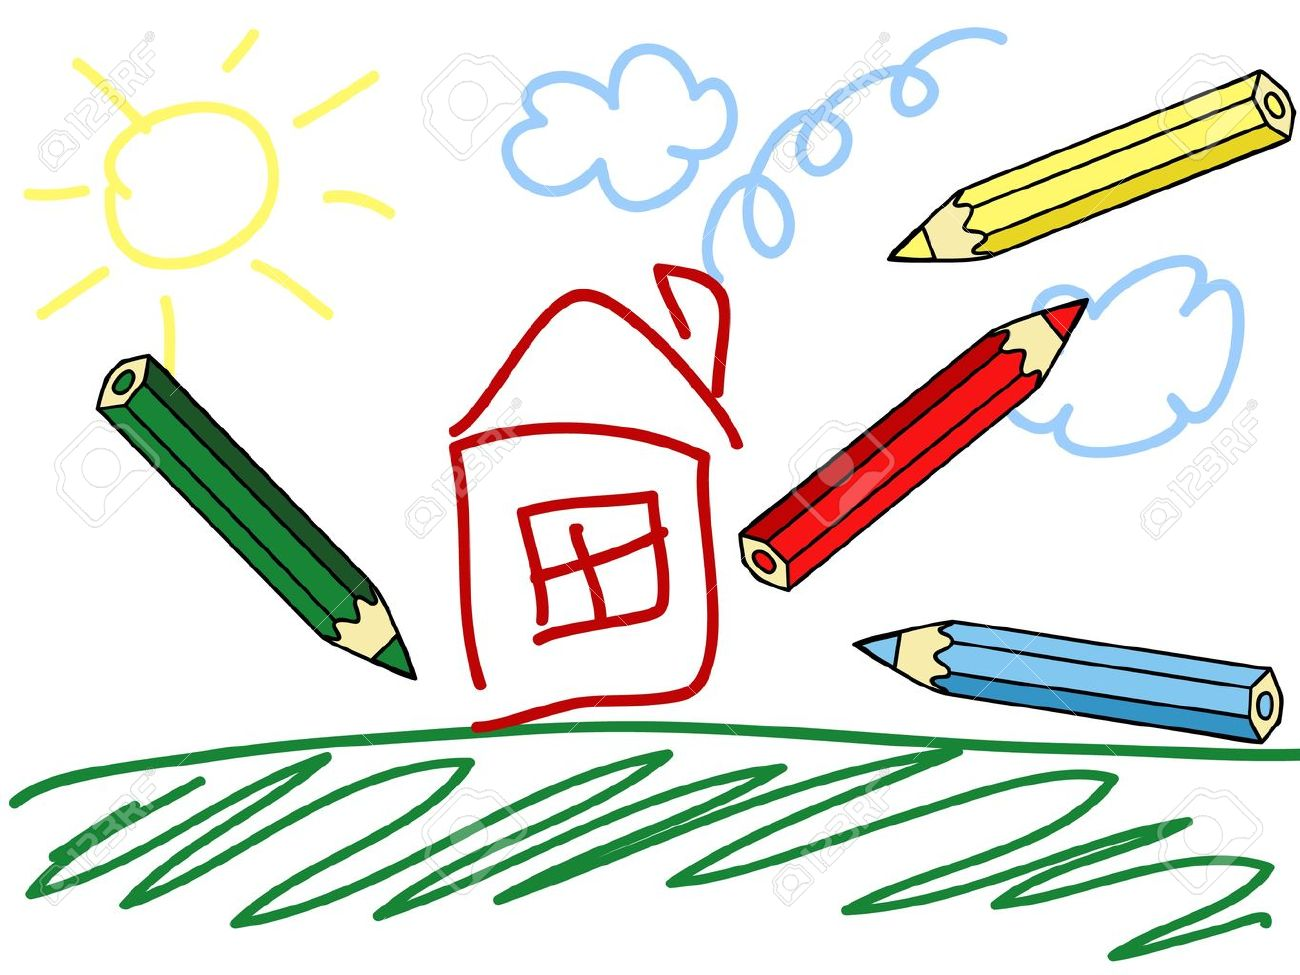 A Child S Drawing And Colorful Pencils Royalty Free Cliparts Vectors And Stock Illustration Image 14368110